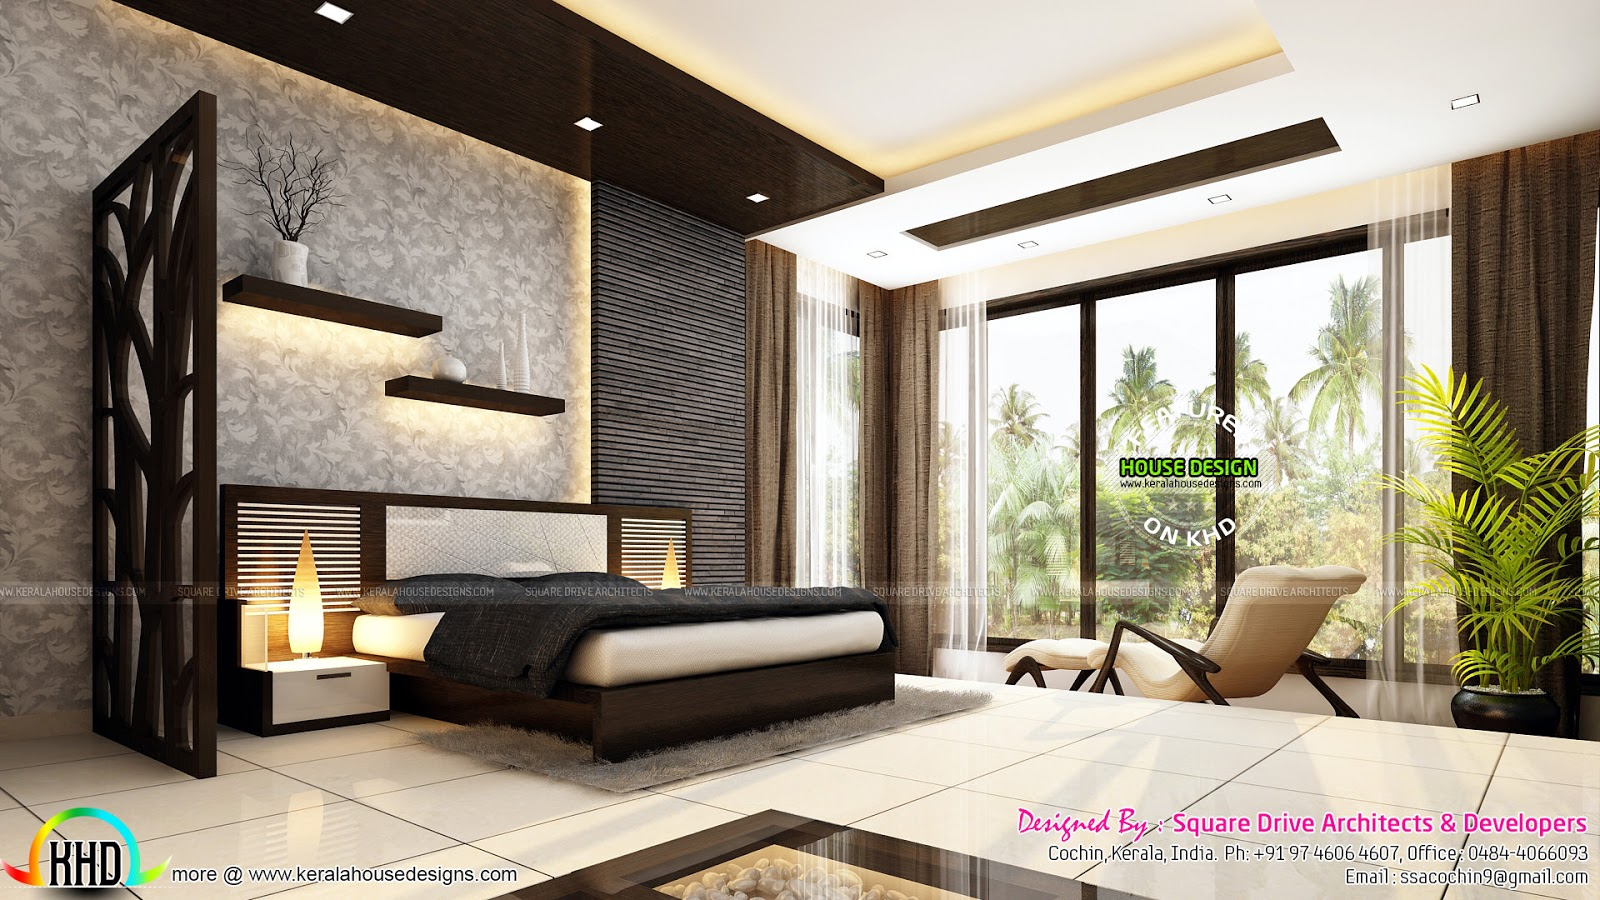 Very beautiful modern interior designs kerala home for Home plans with interior photos